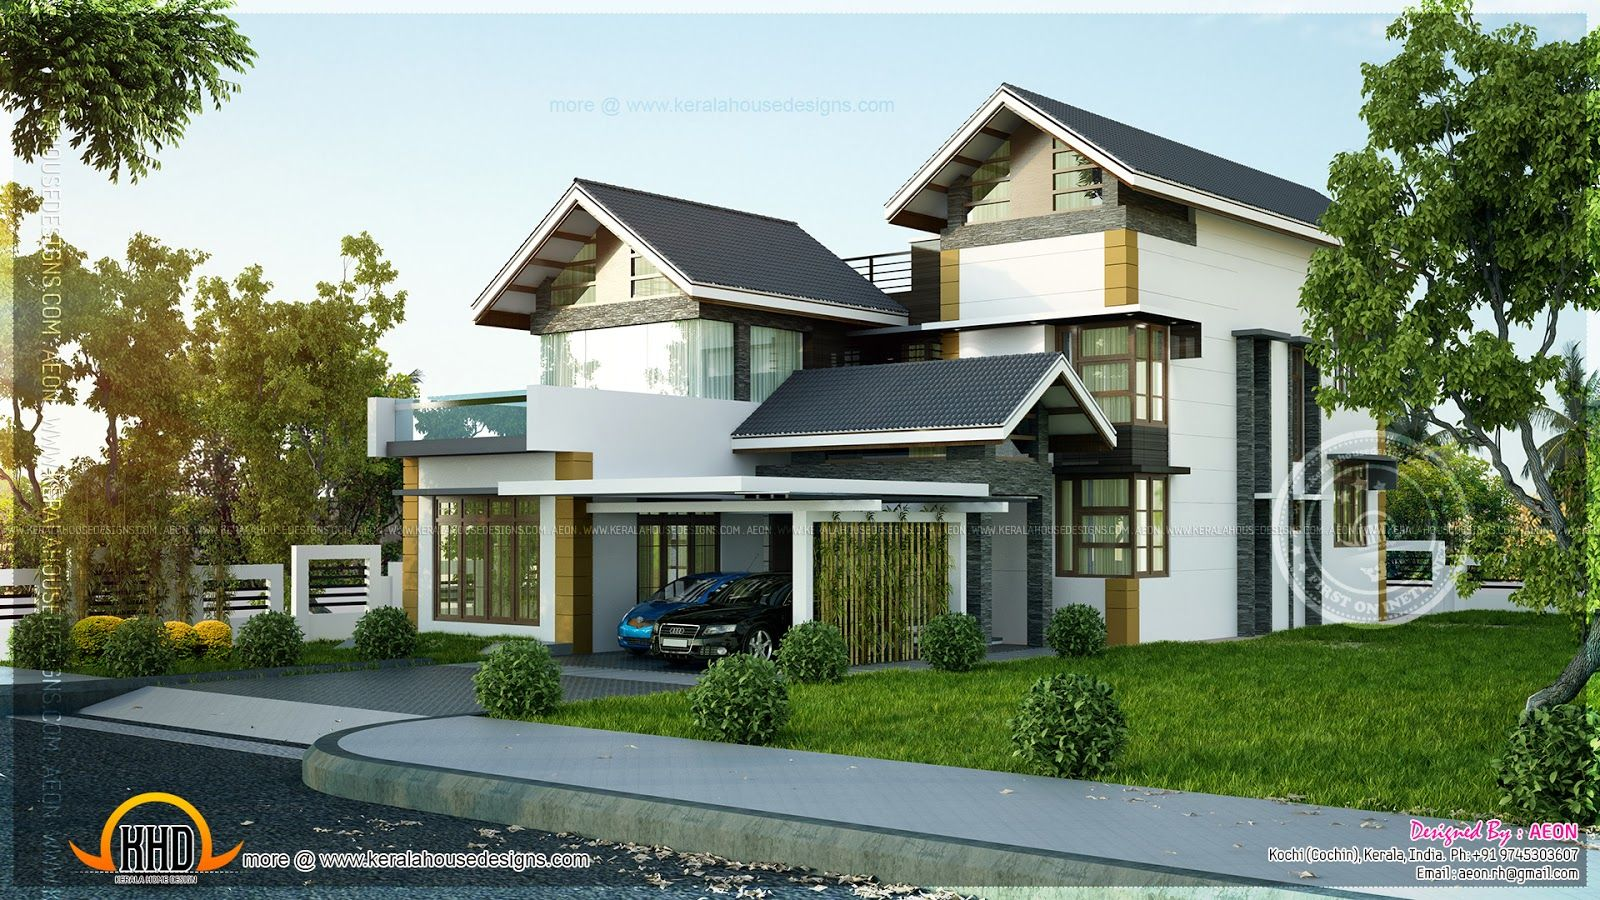 Four bedroom house plans two story house plans two story homes modern house